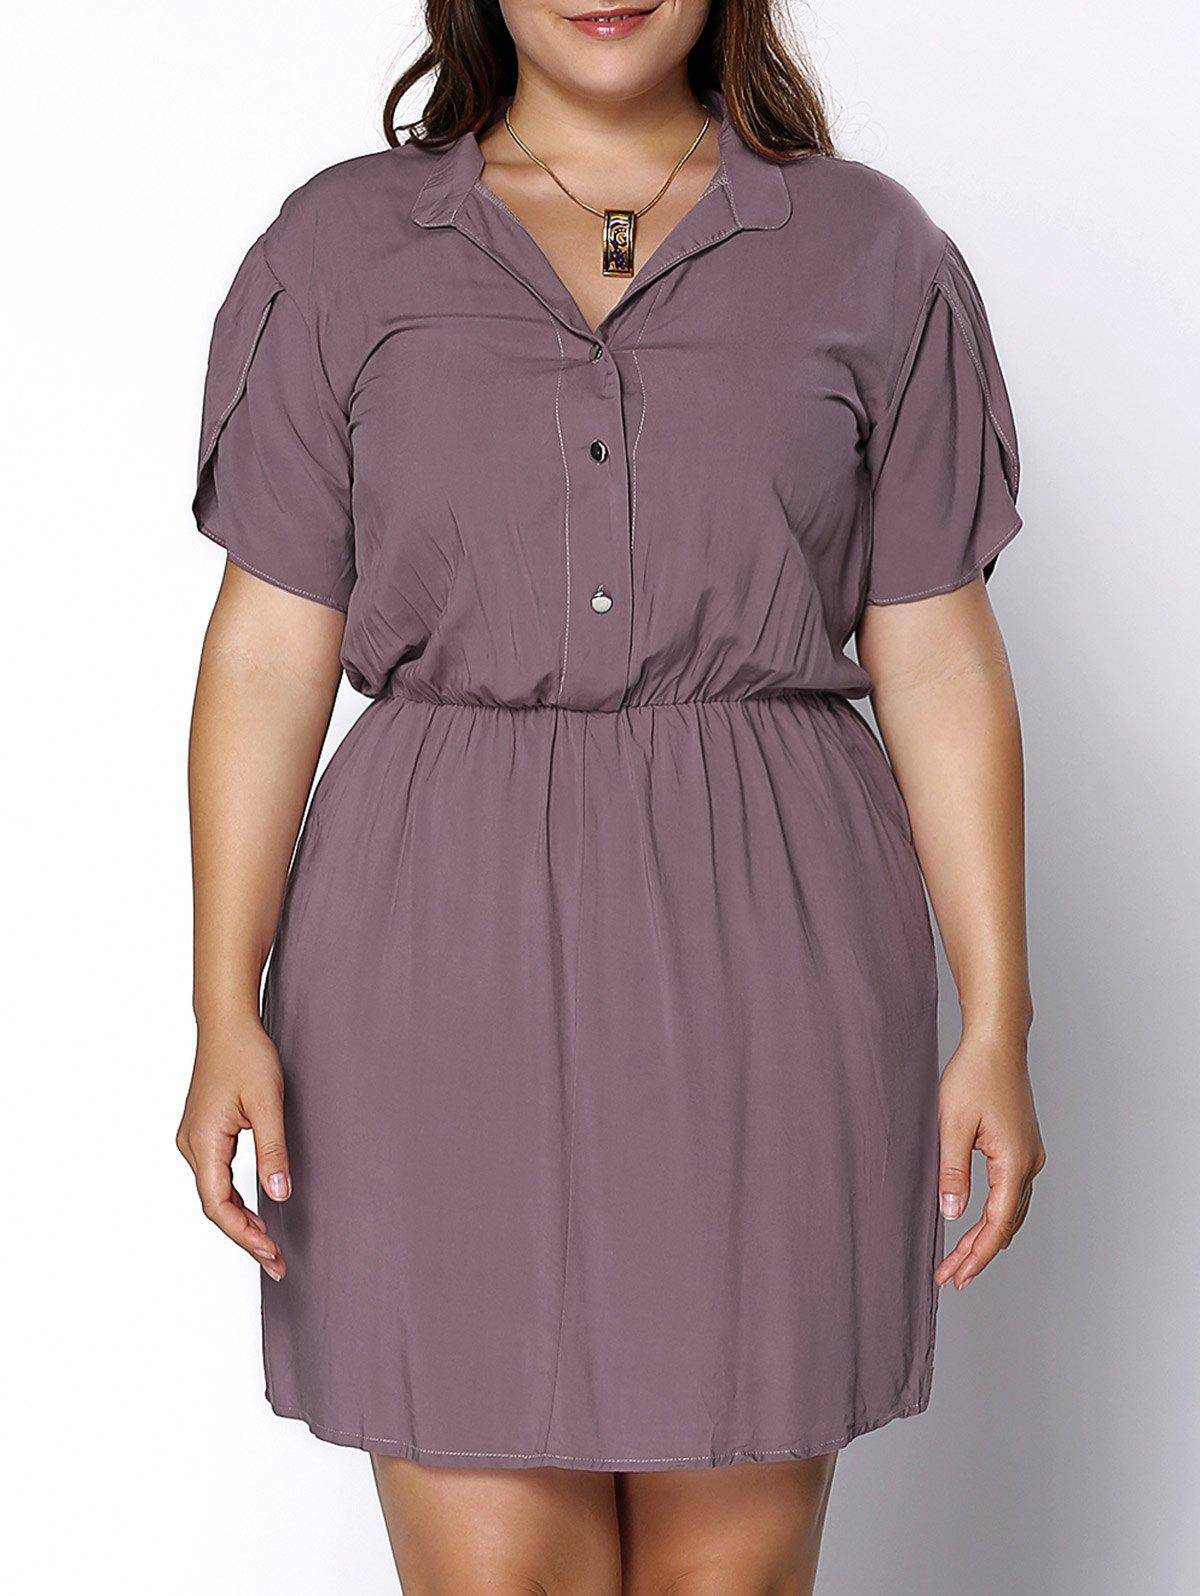 Trendy Short Sleeve Pocket Design Pure Color Plus Size Women's Dress - PURPLE XL